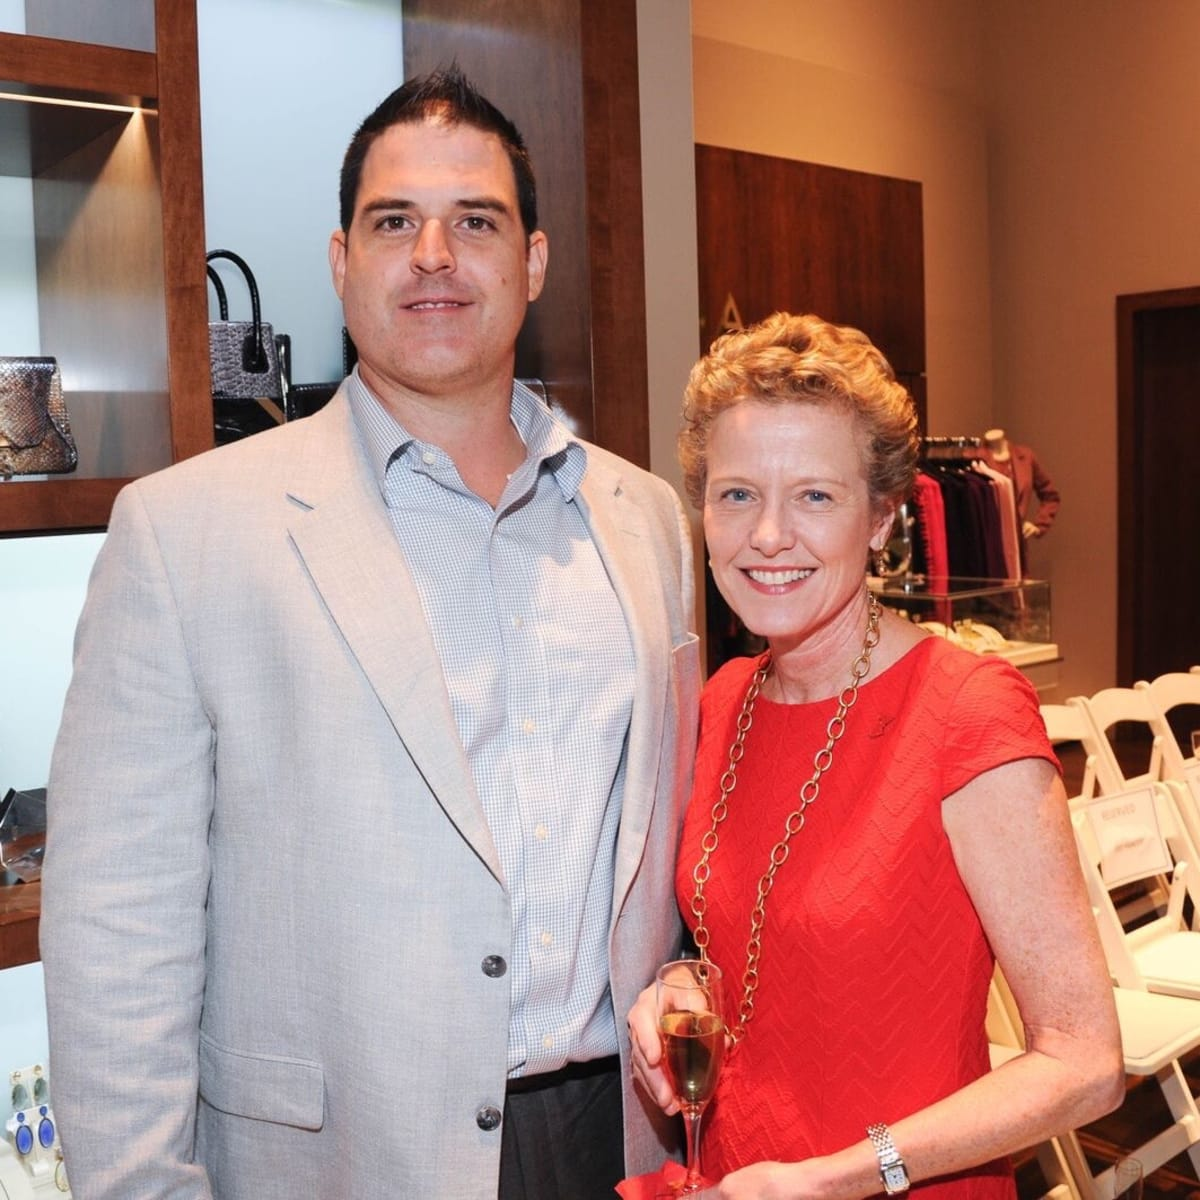 Liancarlo American Heart Association show at Elizabeth Anthony, James Guest, Laura Bellows